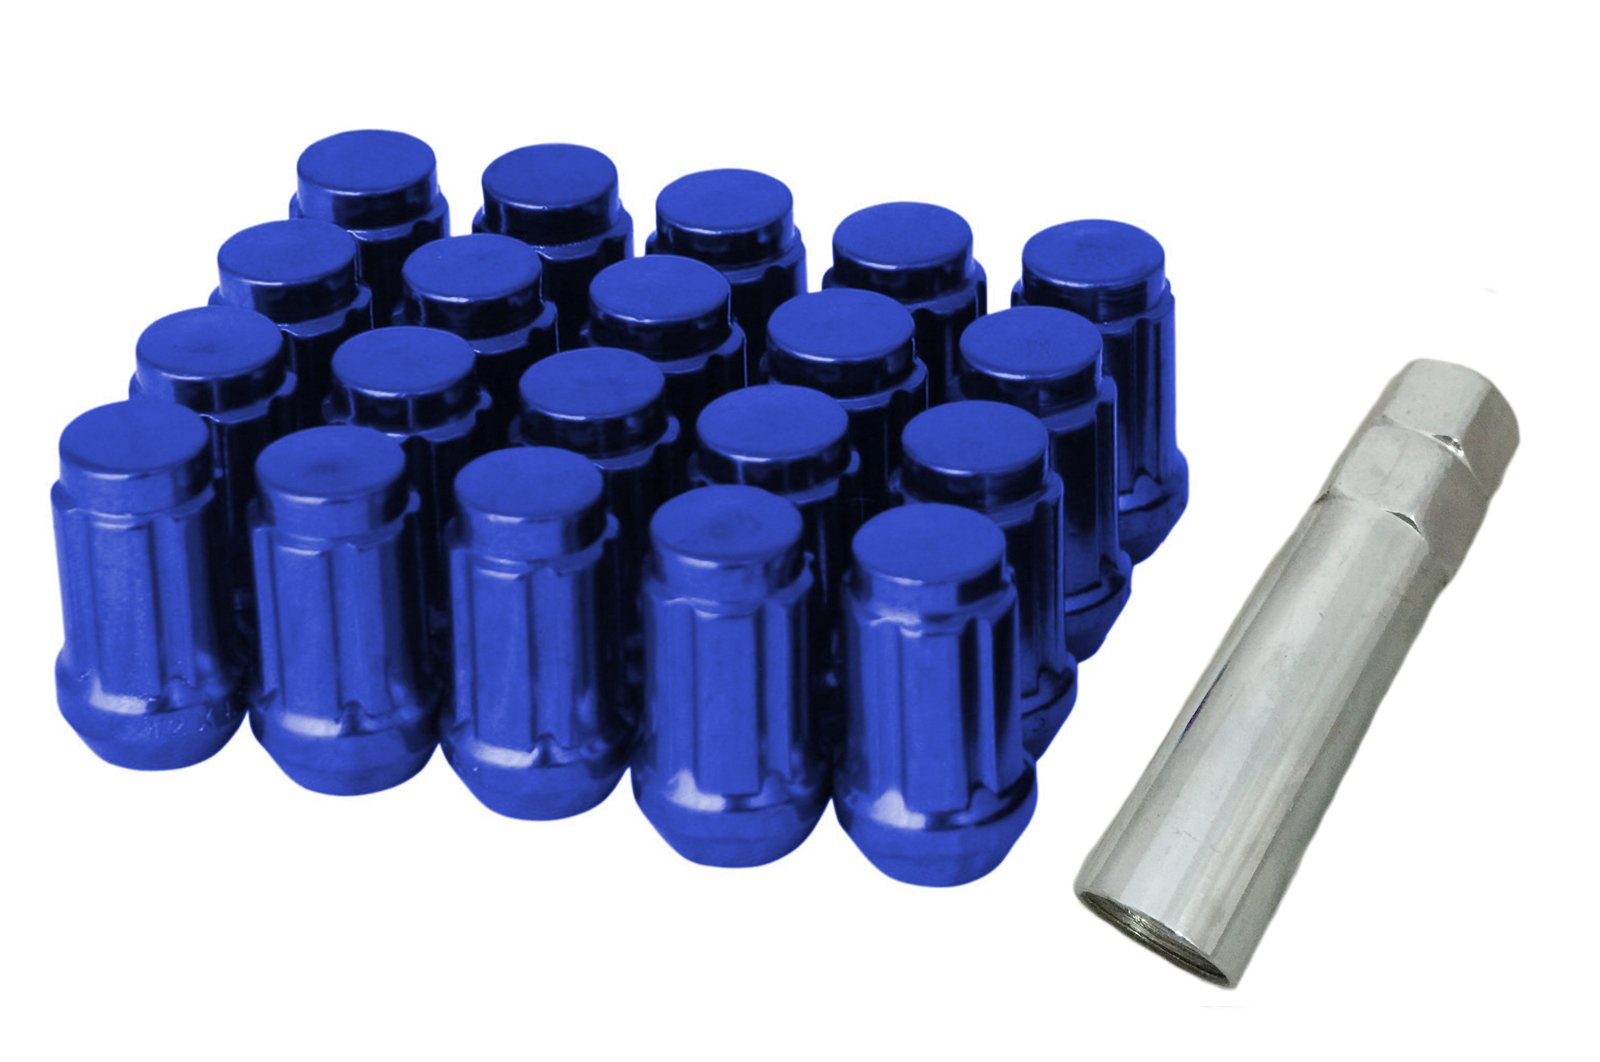 RPC CPR Close Ended Steel Wheel Lug Nuts 7 Sides 20Pcs With Key M12X1.25 White